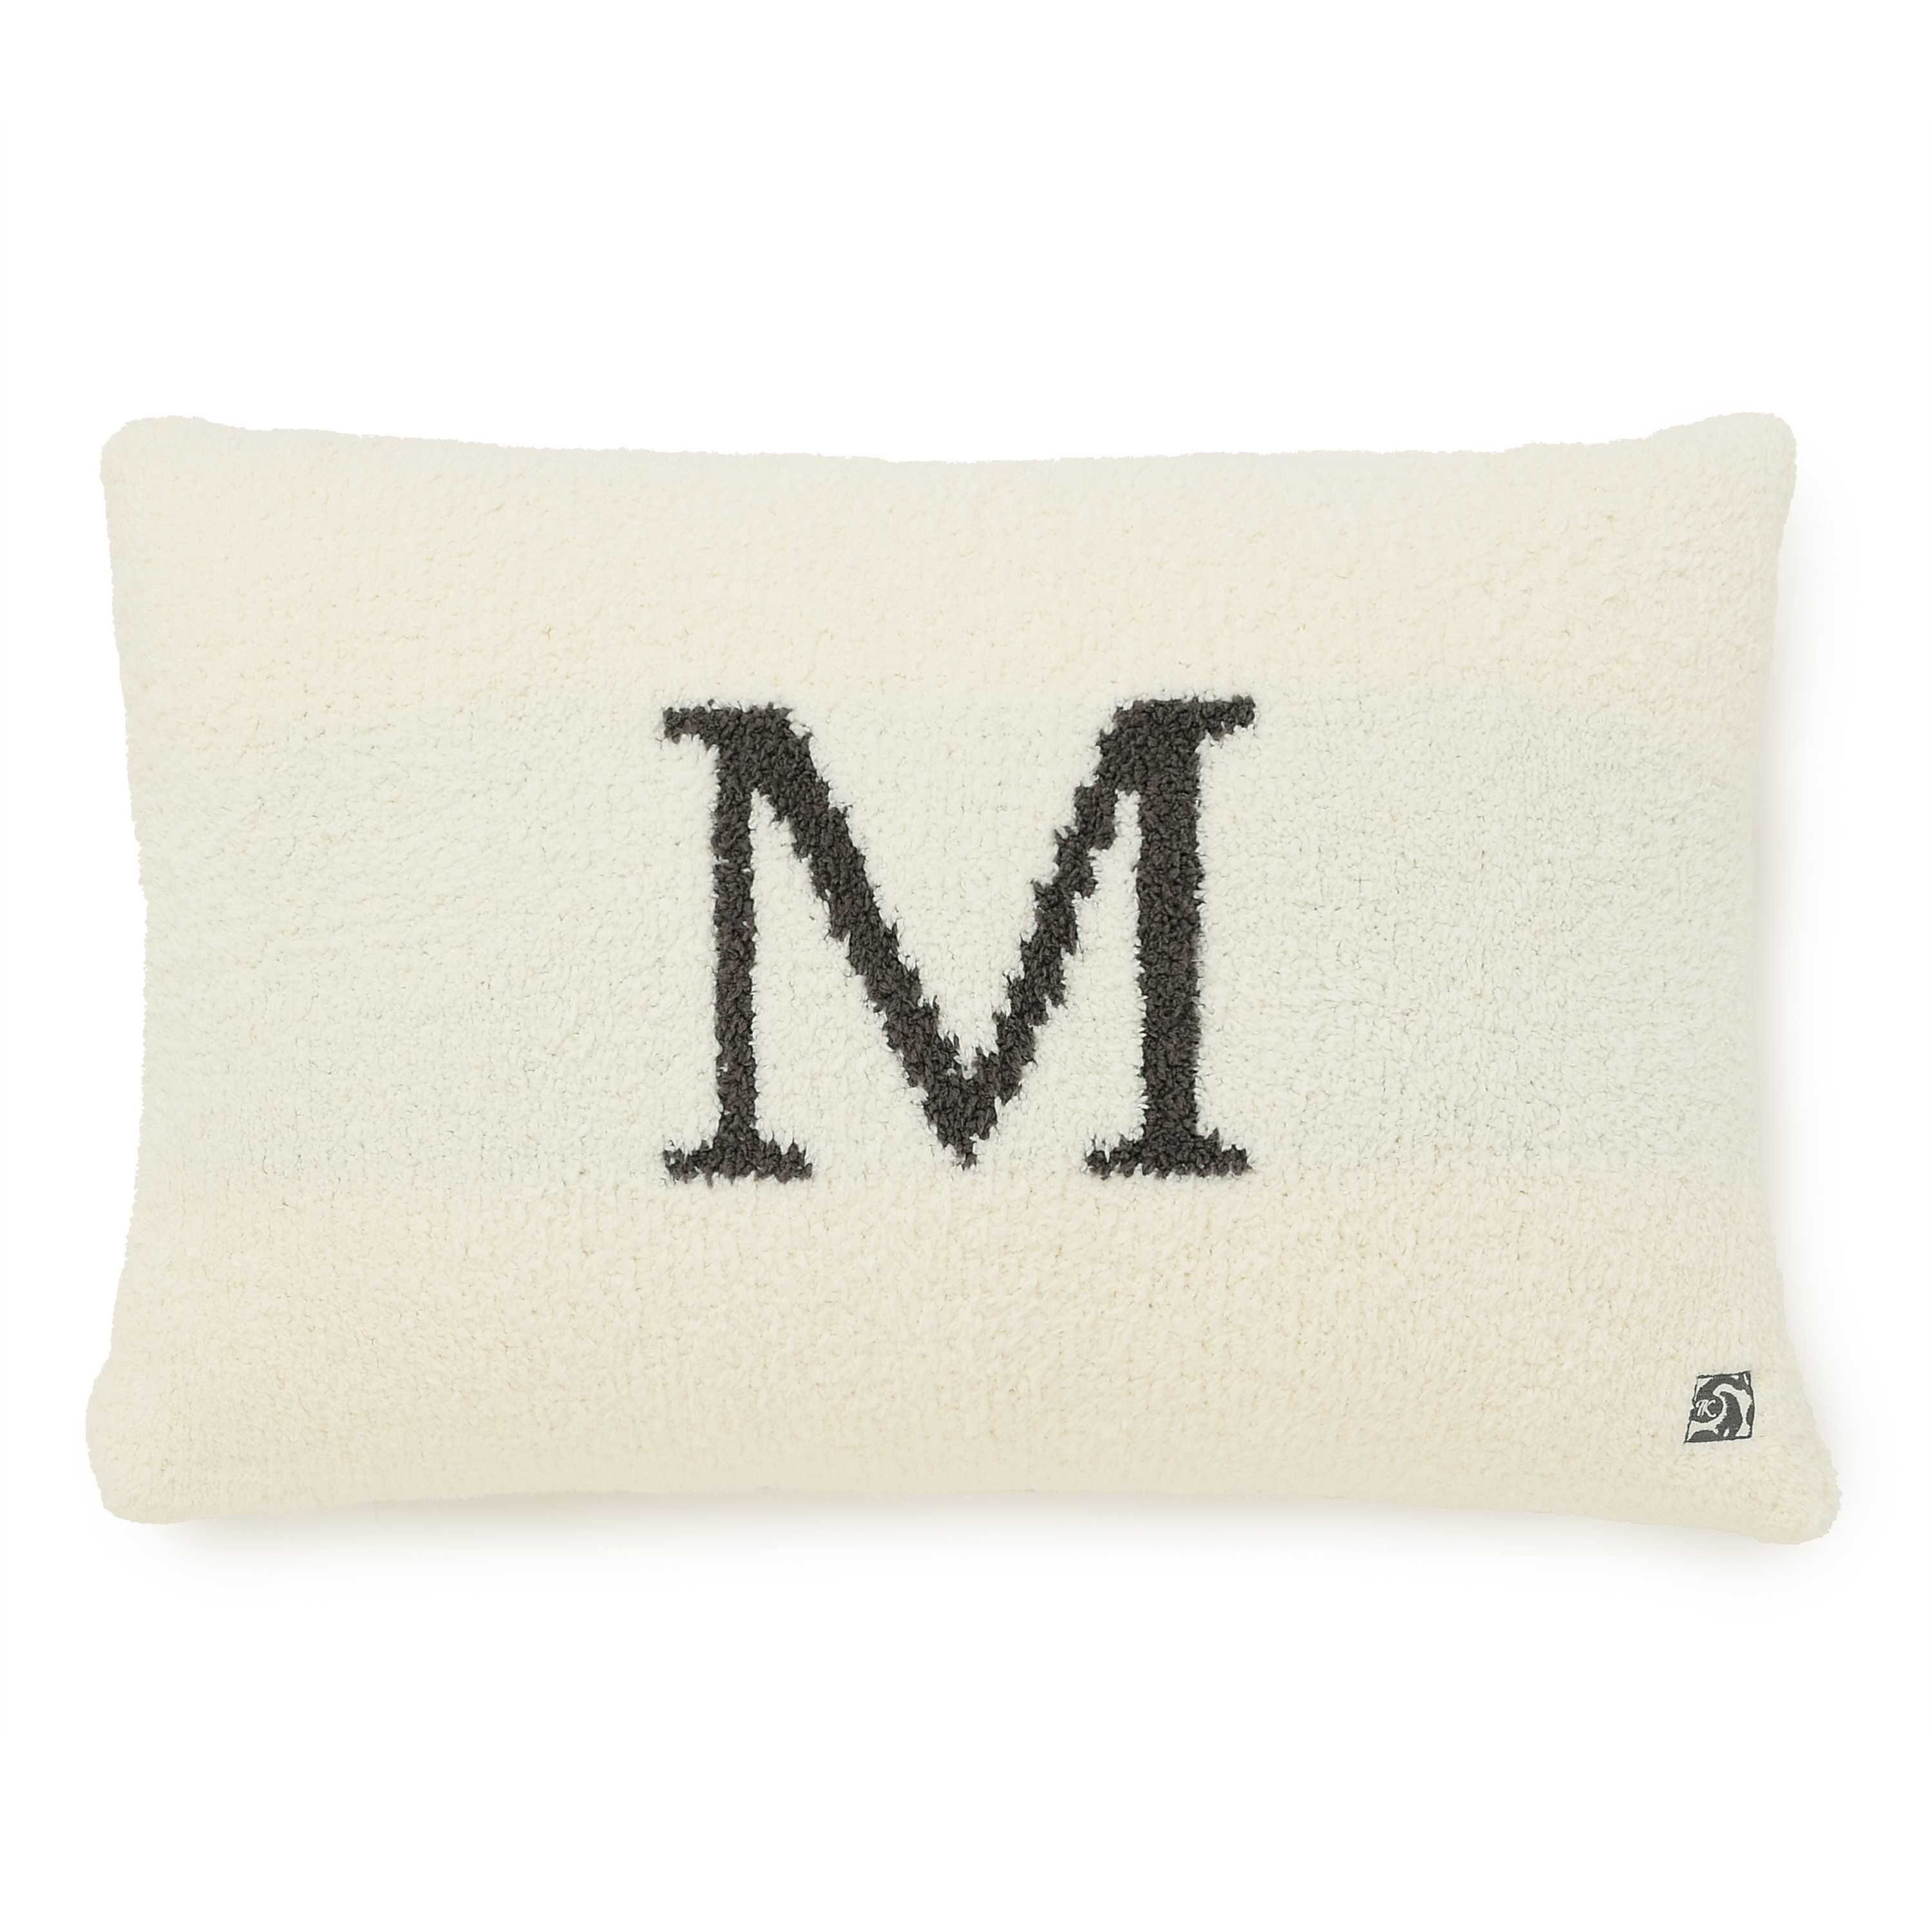 PILLOW CASE / INITIAL